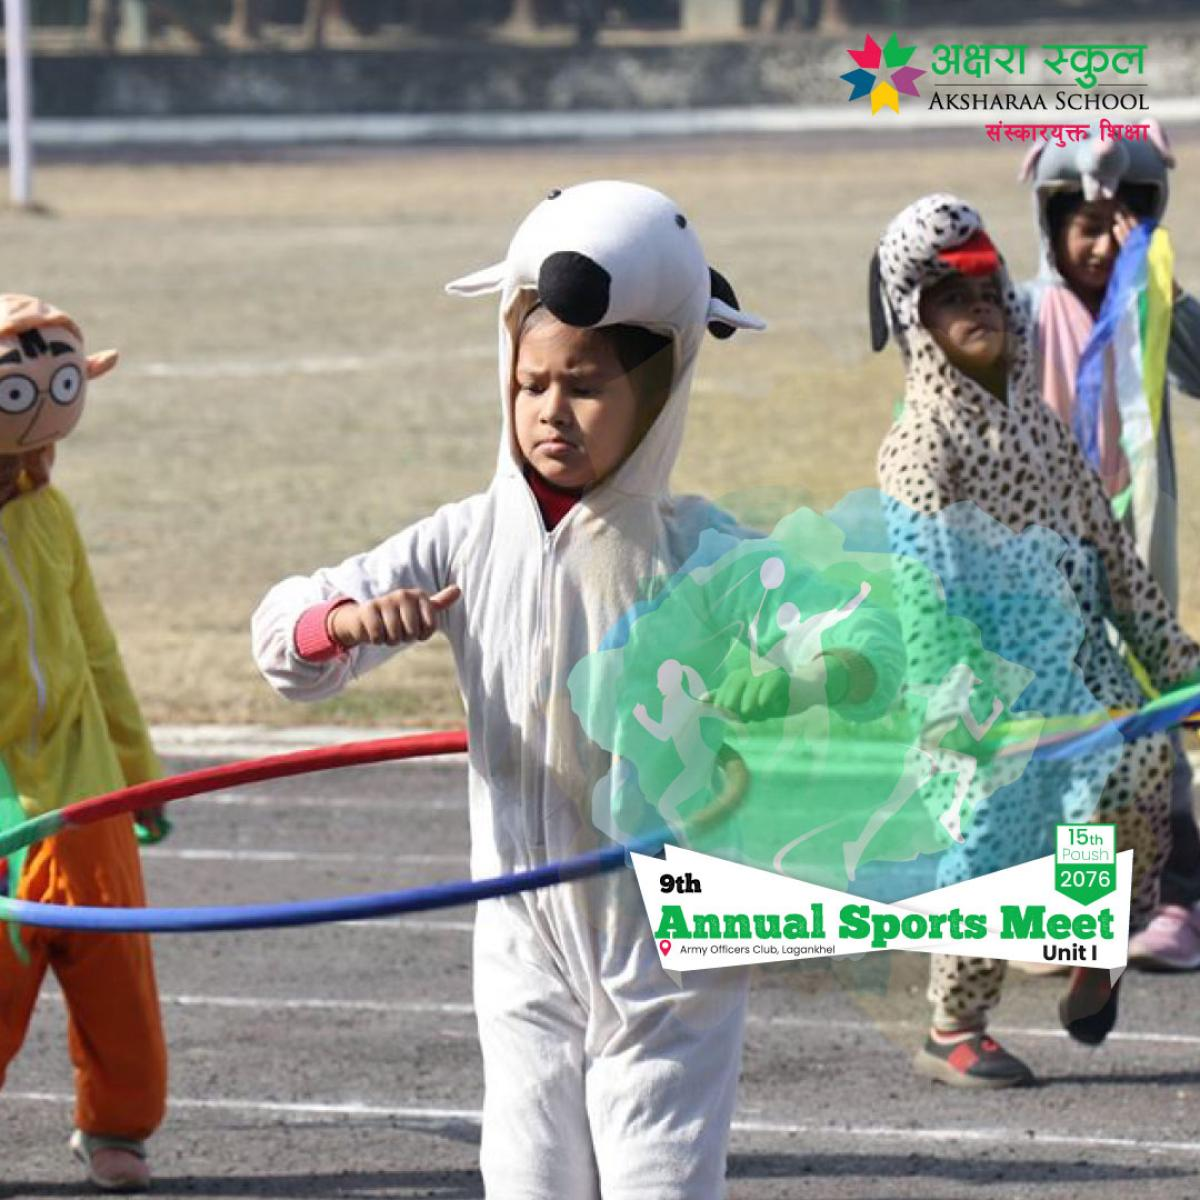 9th Annual Sports Meet-2076 (Unit- I)